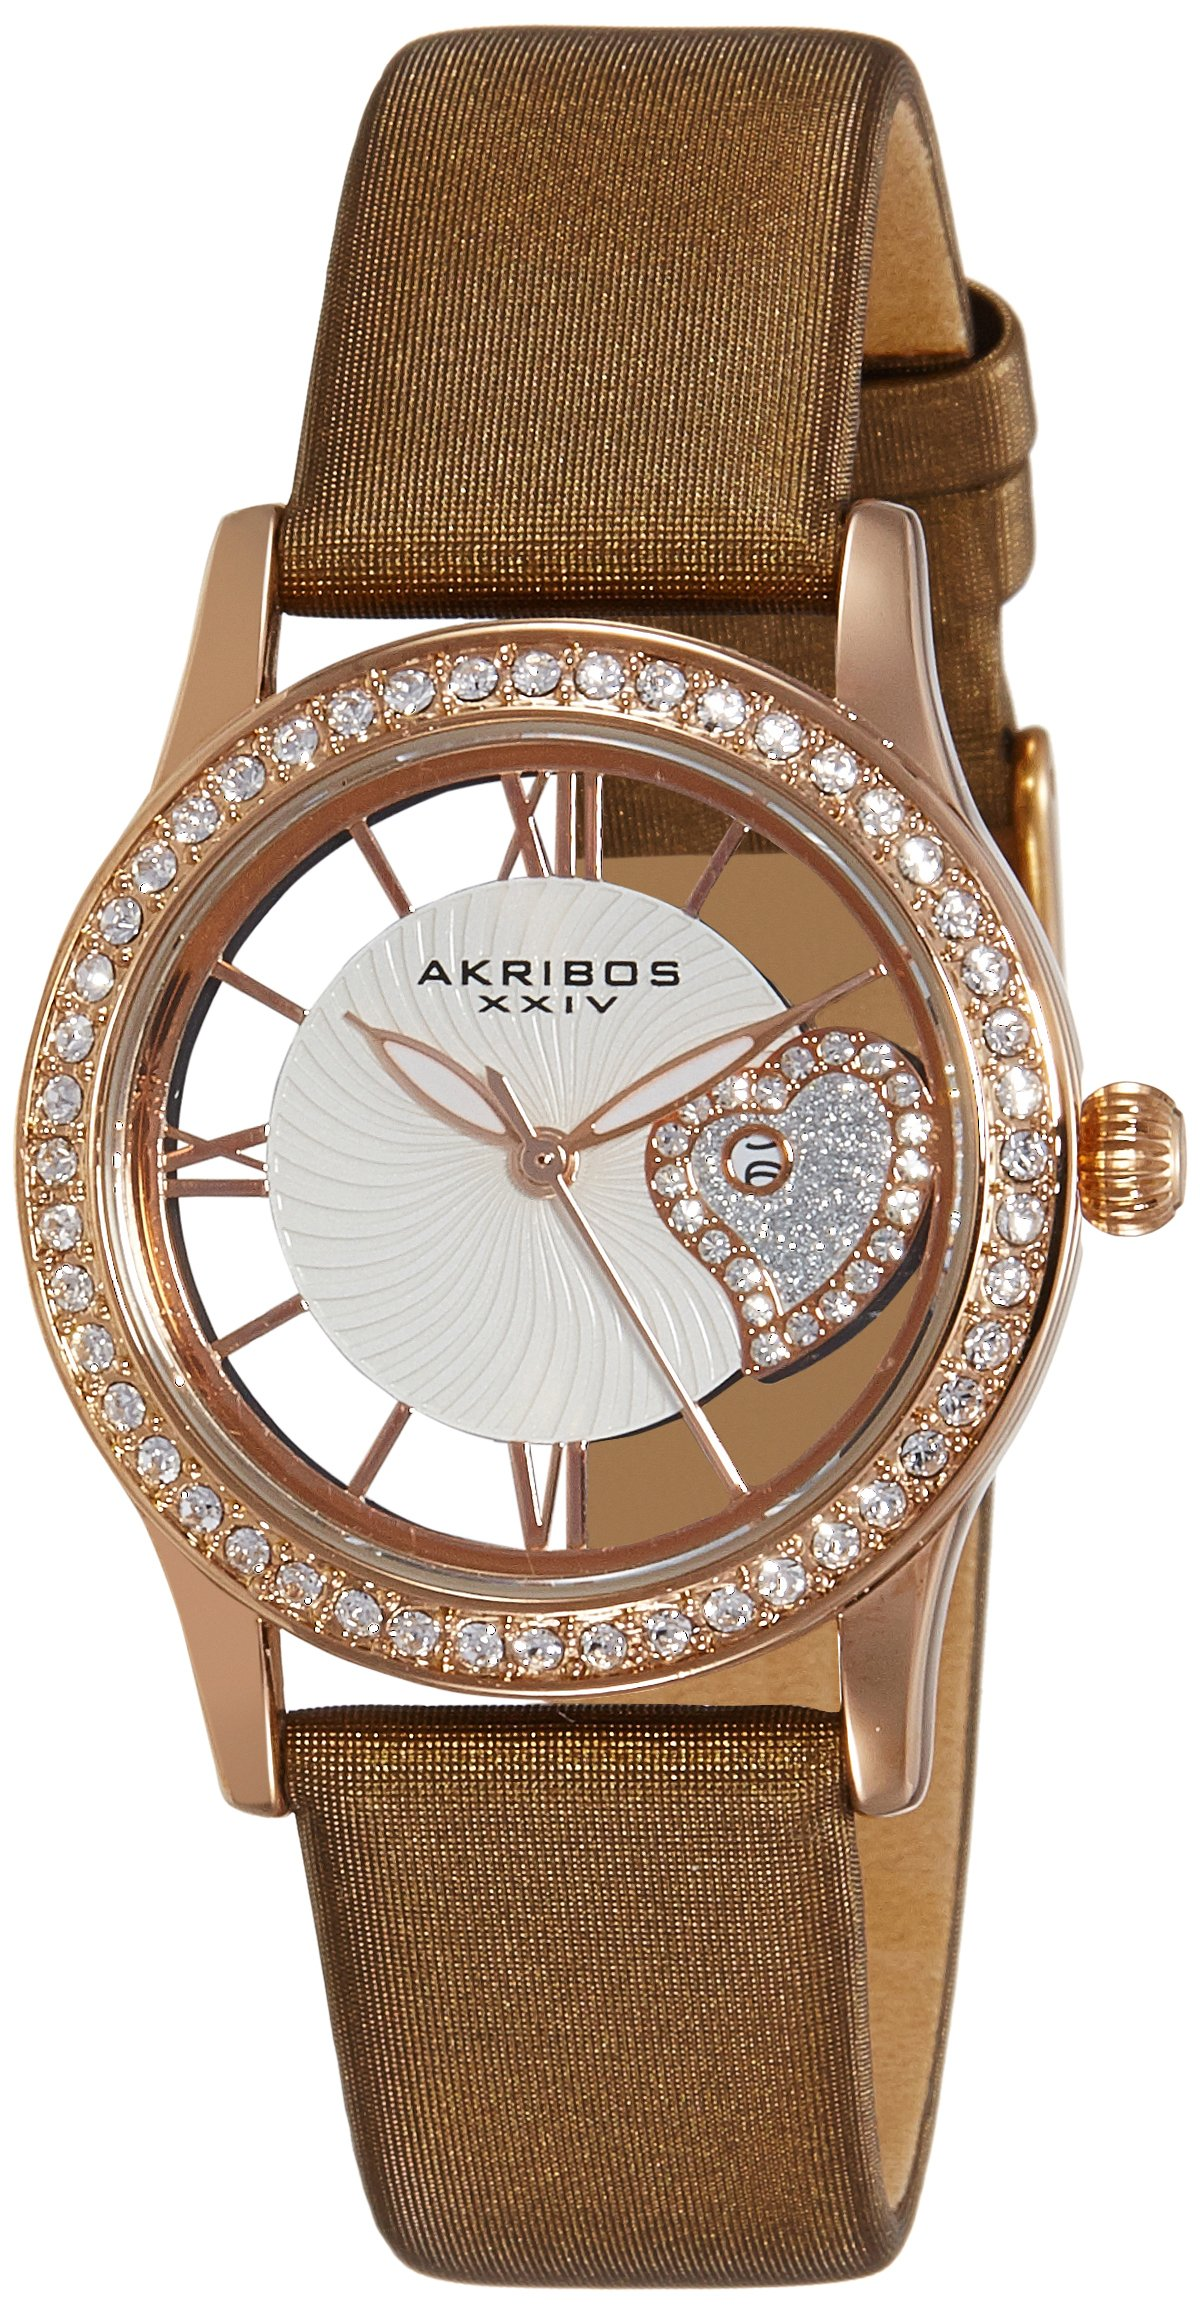 """Akribos XXIV Women's Swarovski Crystal Watch - See Thru Roman Numerals Cut Out Crystal Heart Dial Wave Pattern """"Floating"""" Dial with Date On Satin Strap - AK811"""